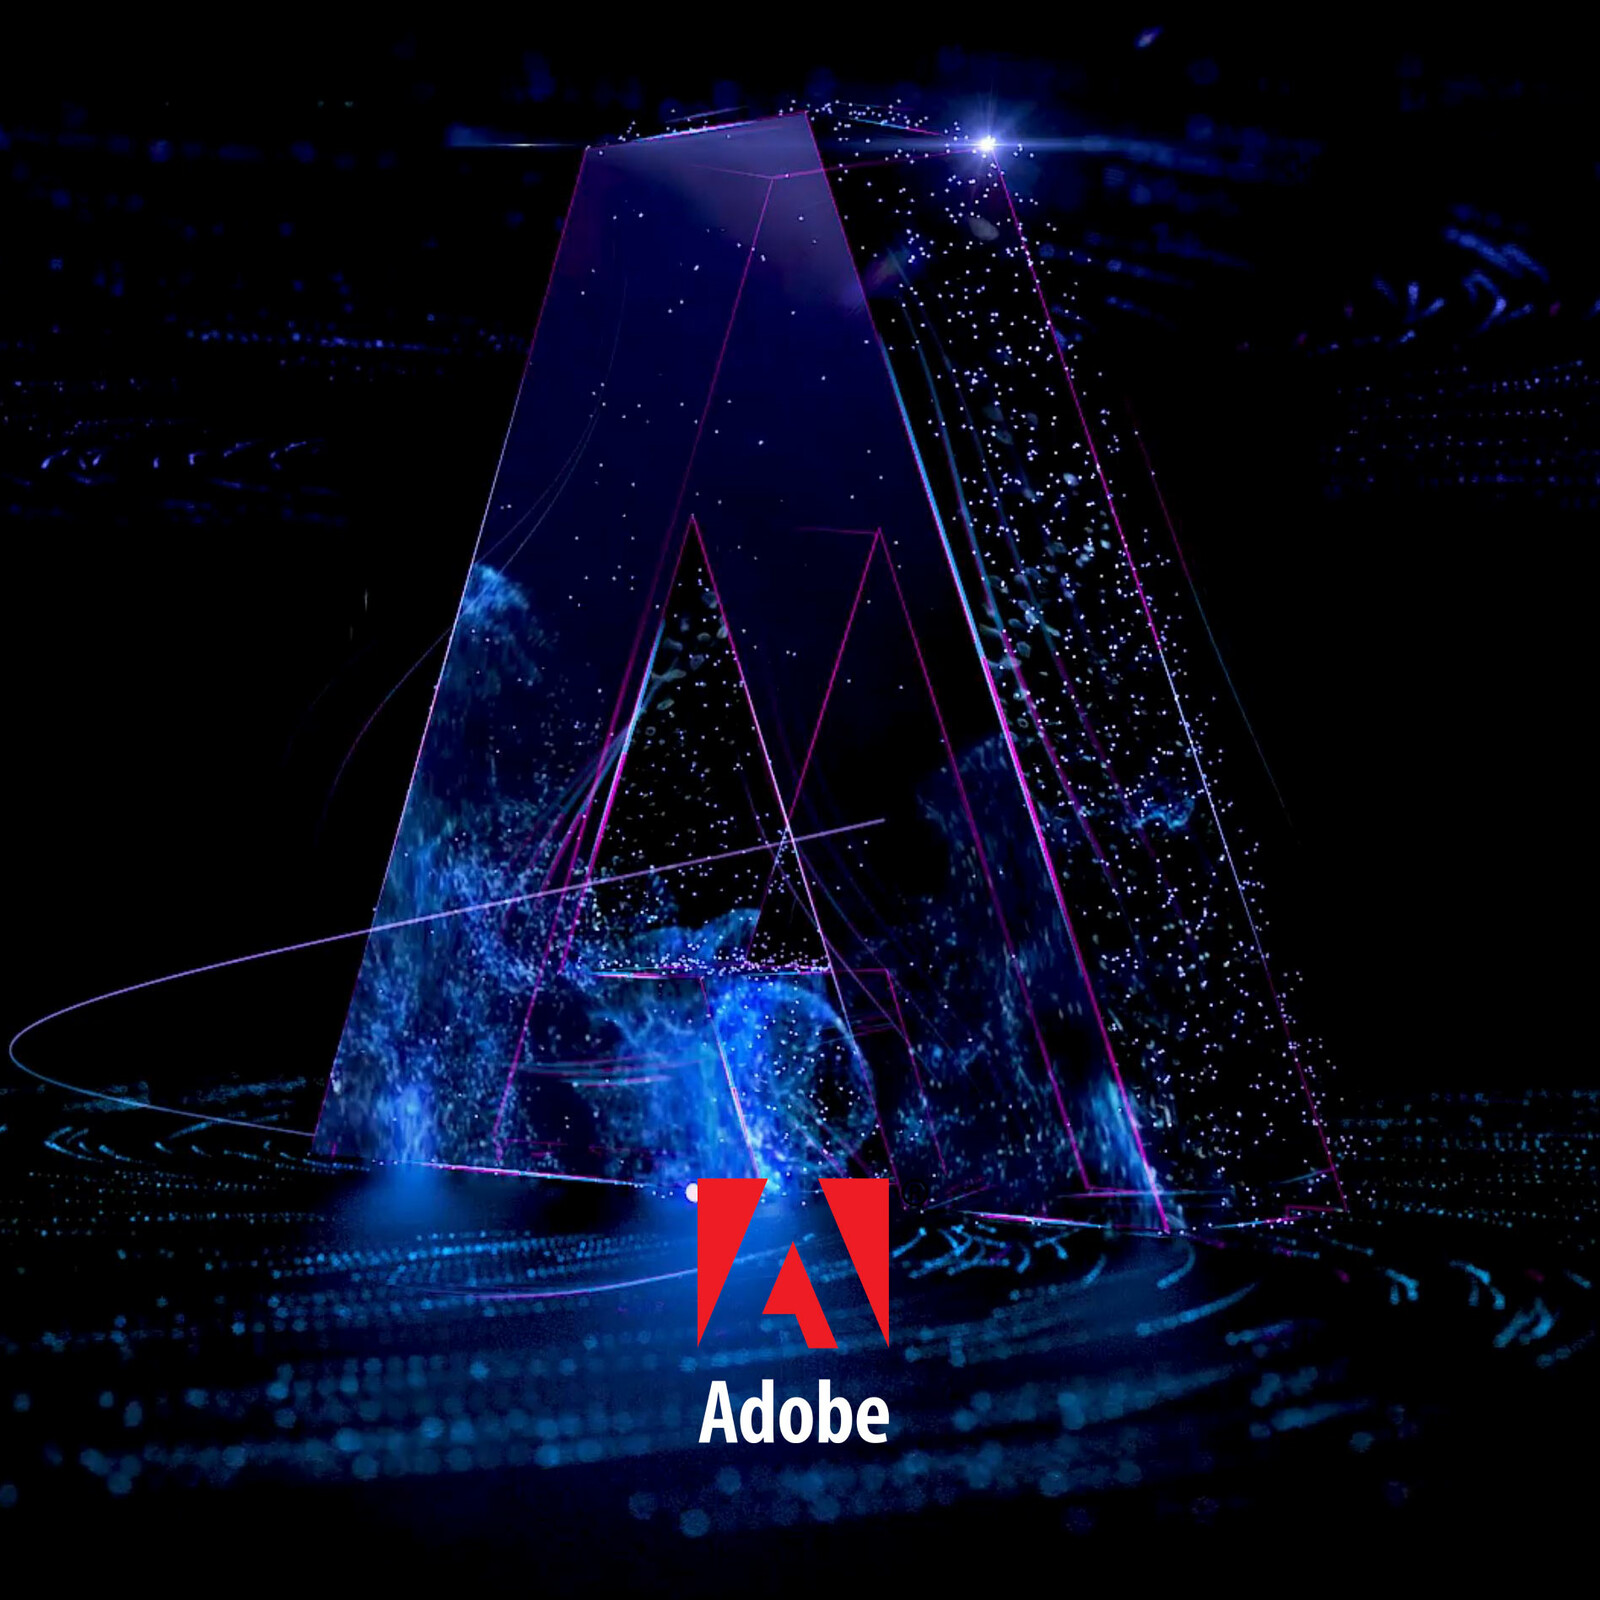 Adobe: Happy Holidays 2019